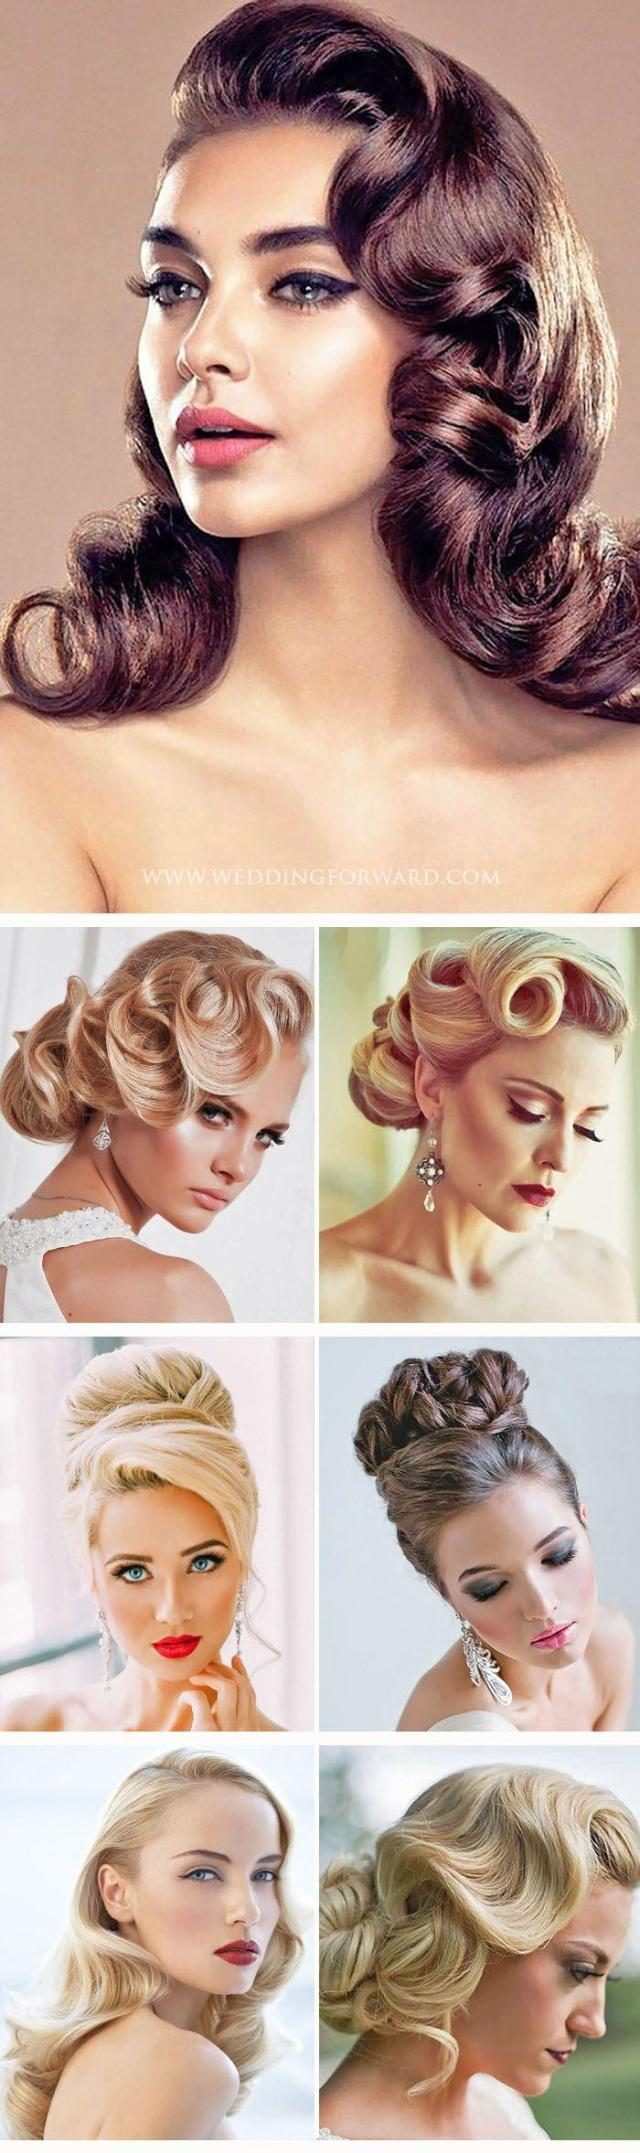 45 undercut hairstyles with hair tattoos for women #2719217